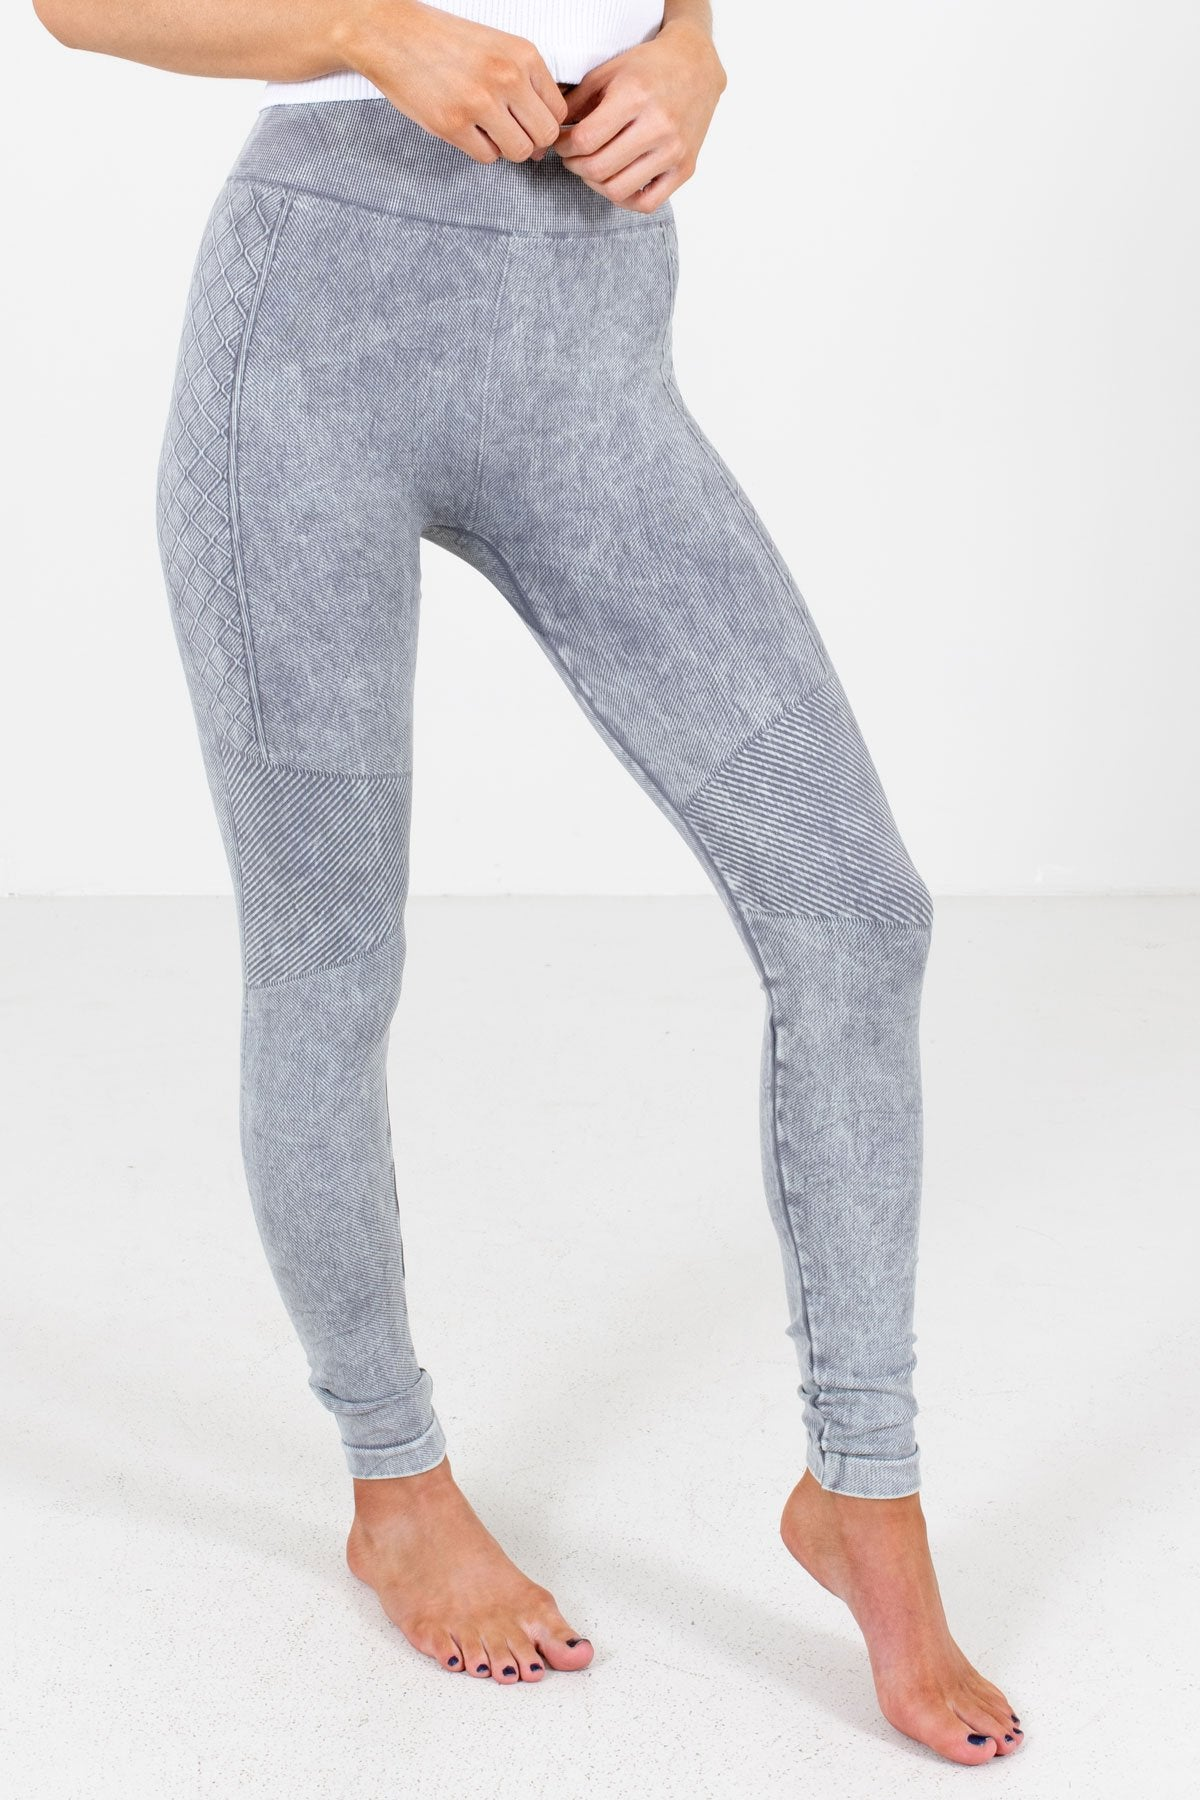 Charcoal Gray Mineral Wash Boutique Active Leggings for Women